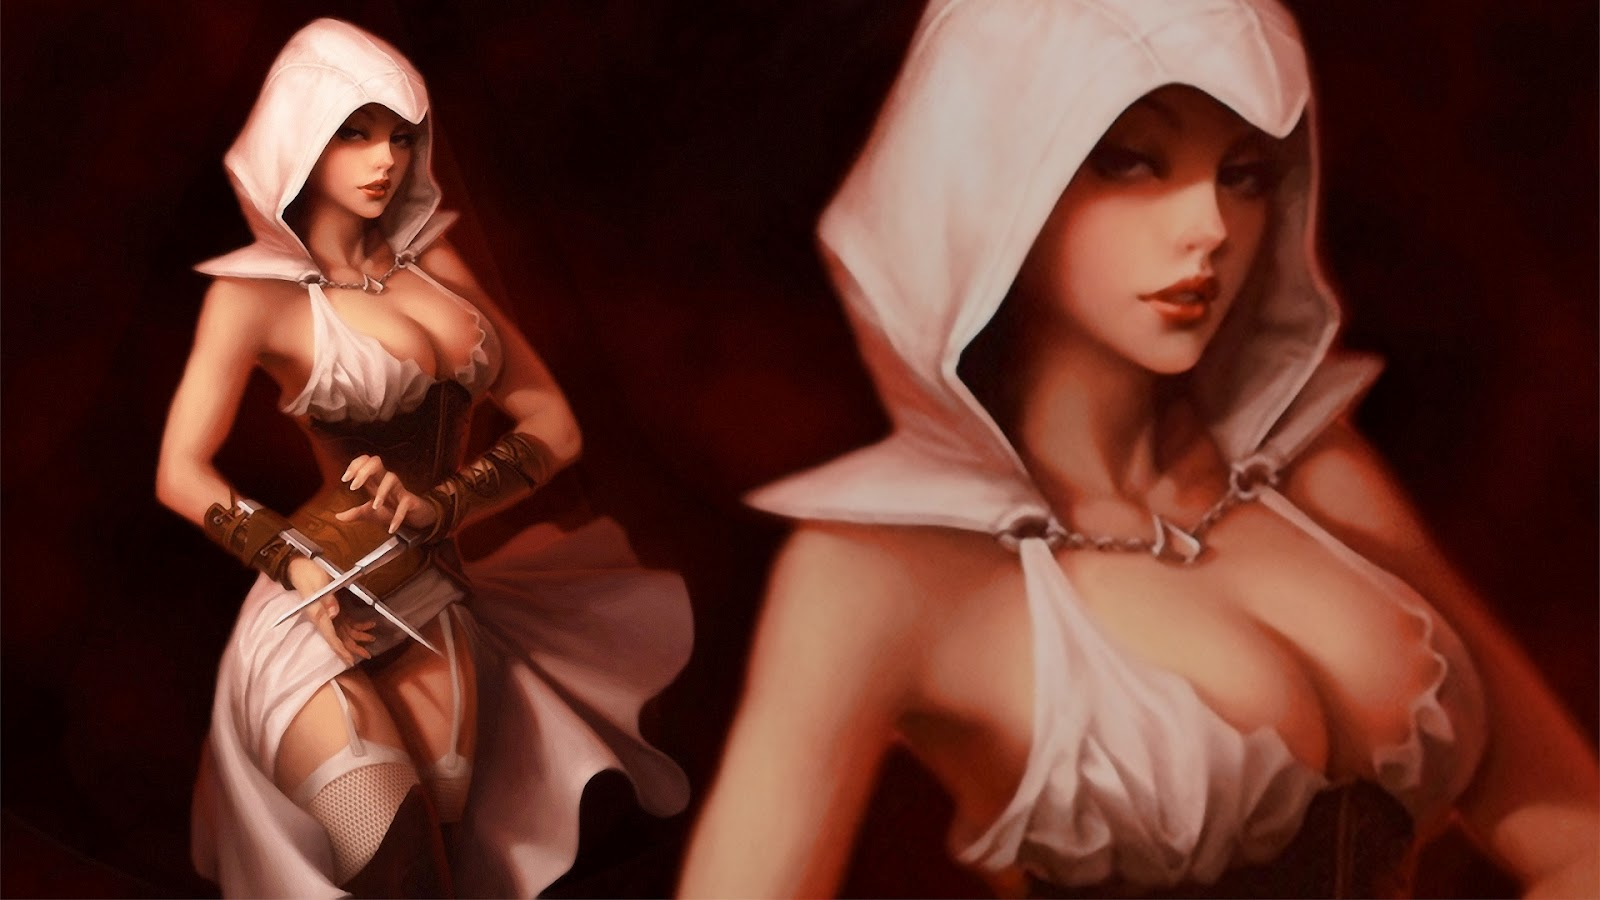 Hentai lesbian assassin's creed 4 pictures exploited streaming